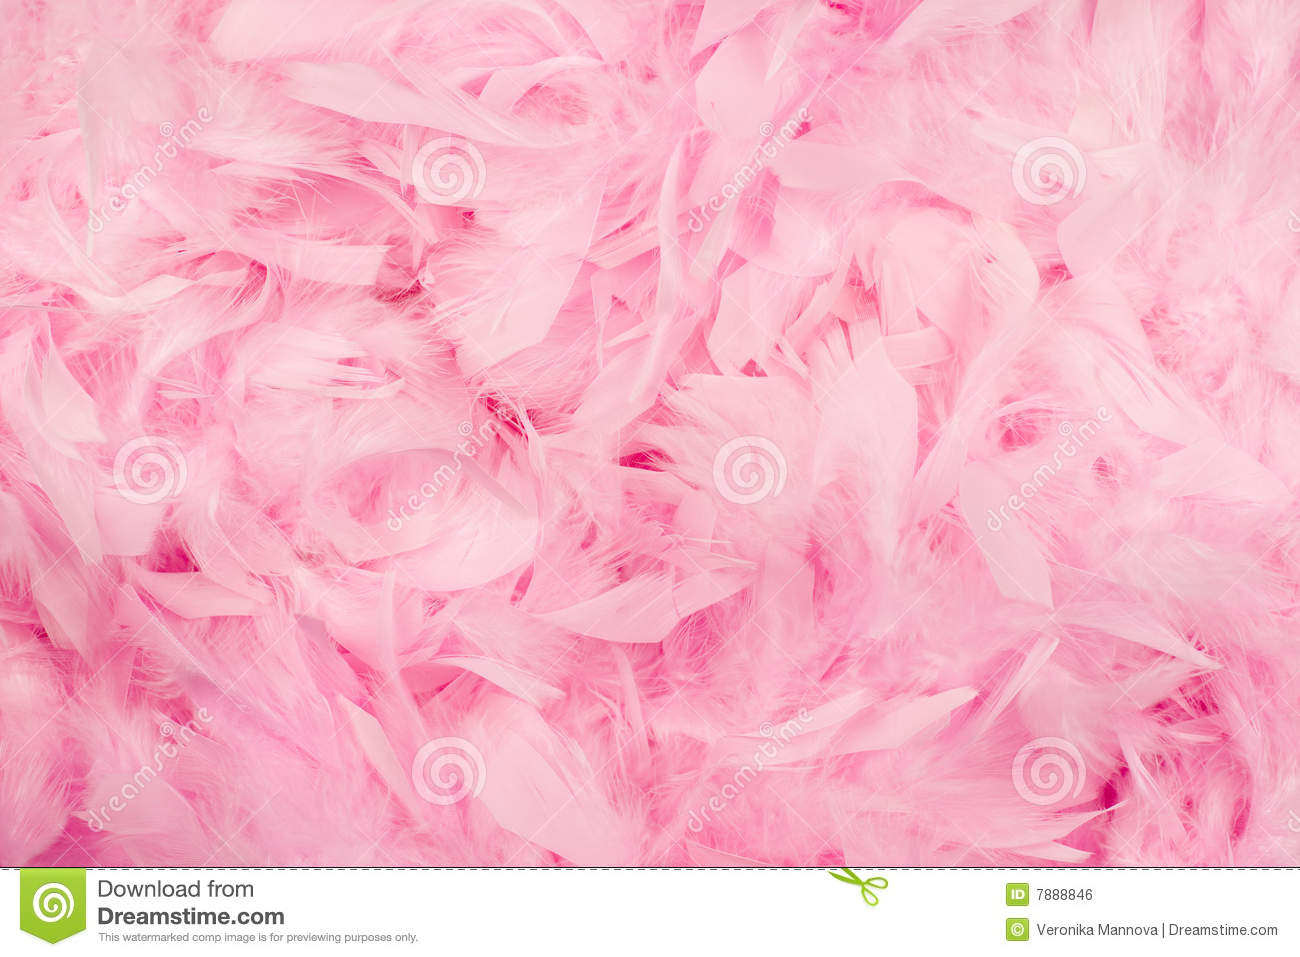 pink feathers background royalty free stock image   image